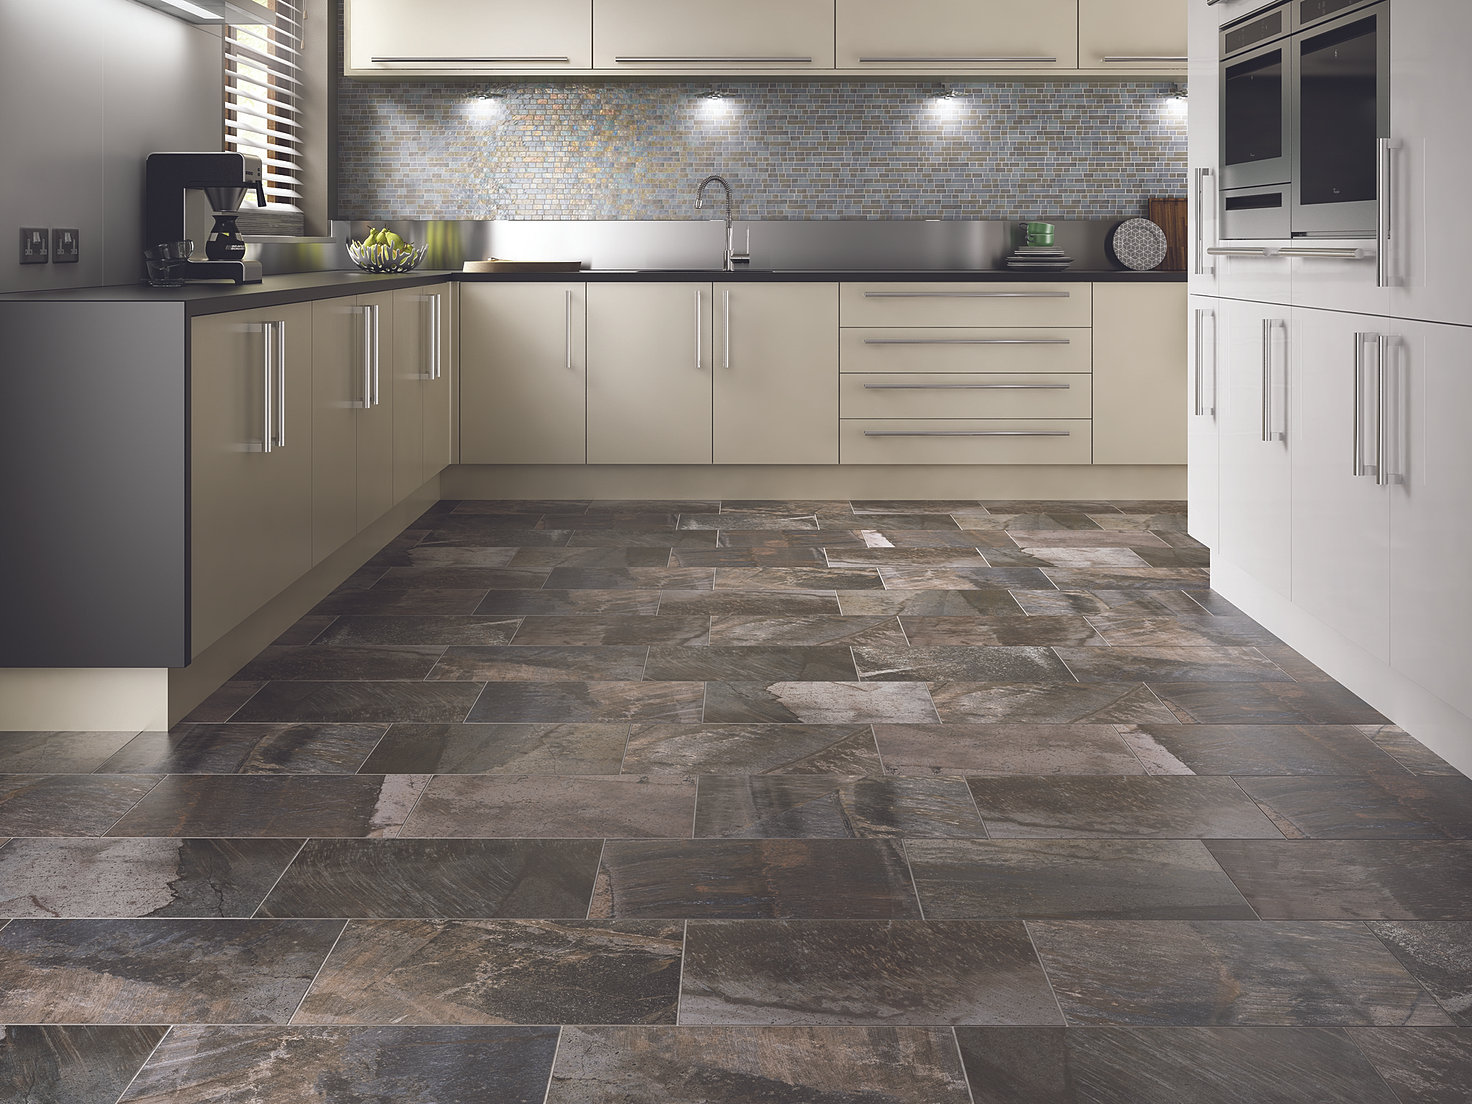 Floor Coverings For Kitchens Morrellfloorcovering